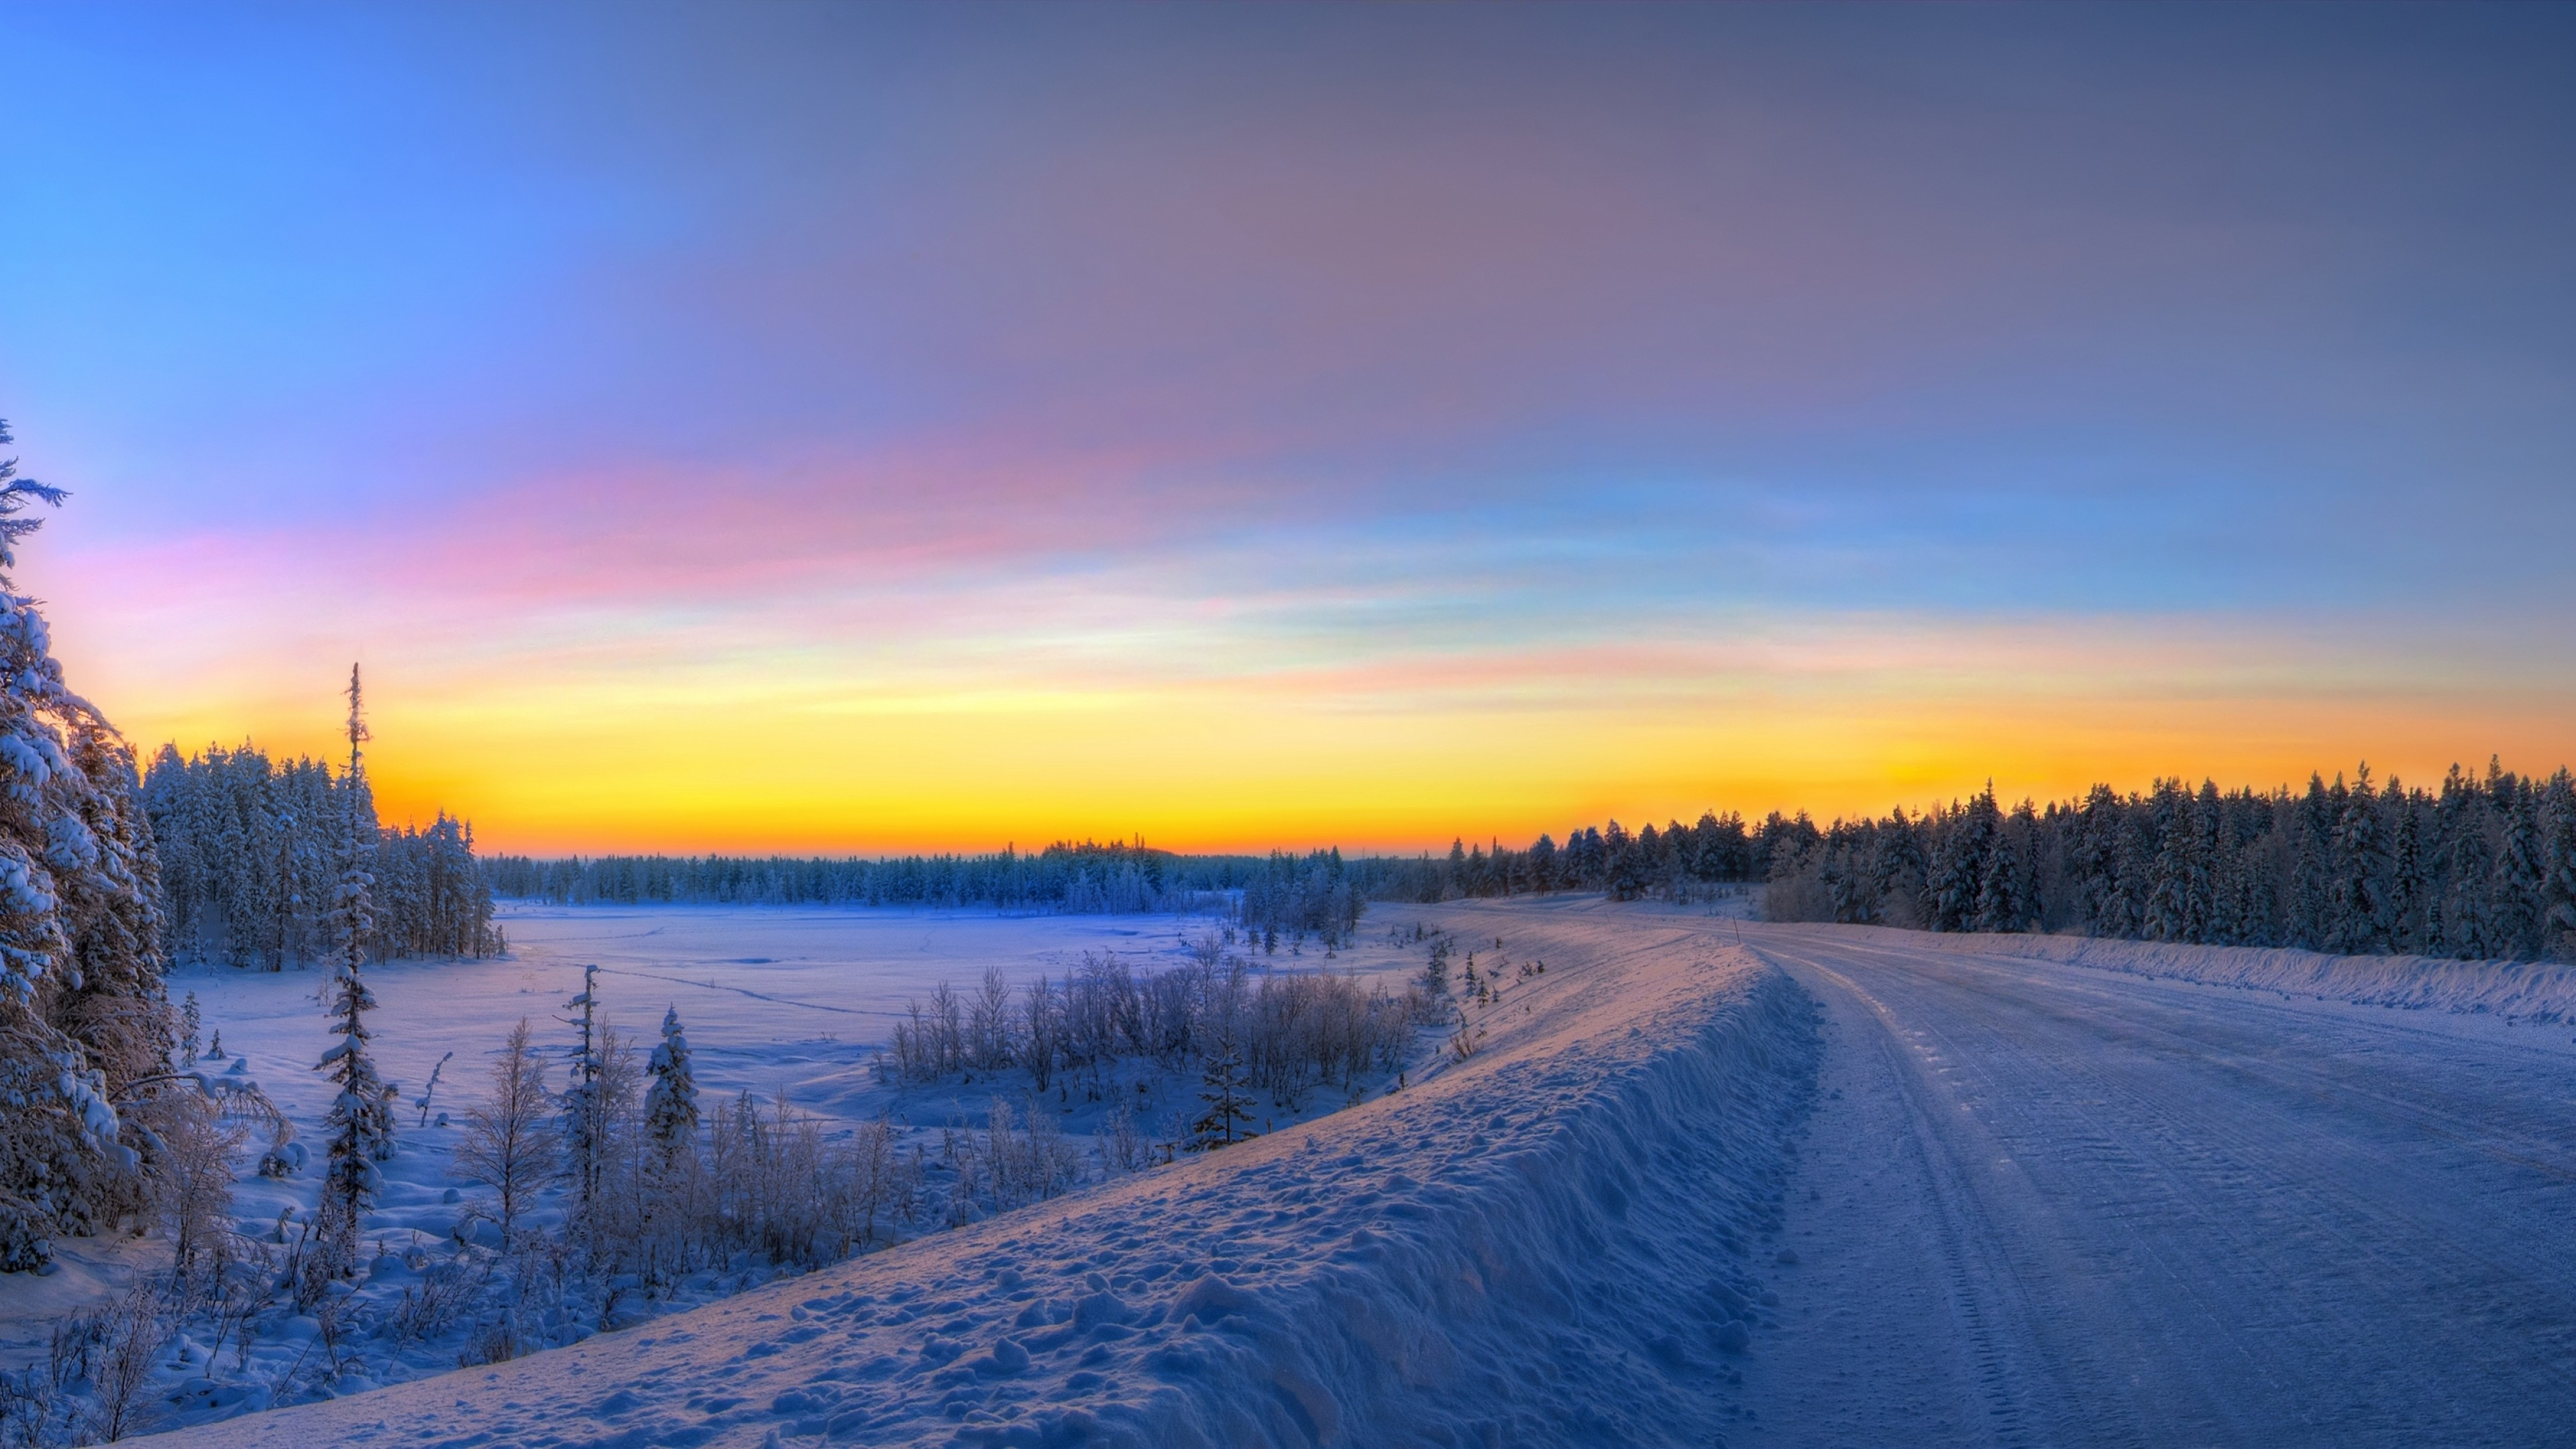 3840x2160 Preview wallpaper panorama, sunset, road, winter, landscape